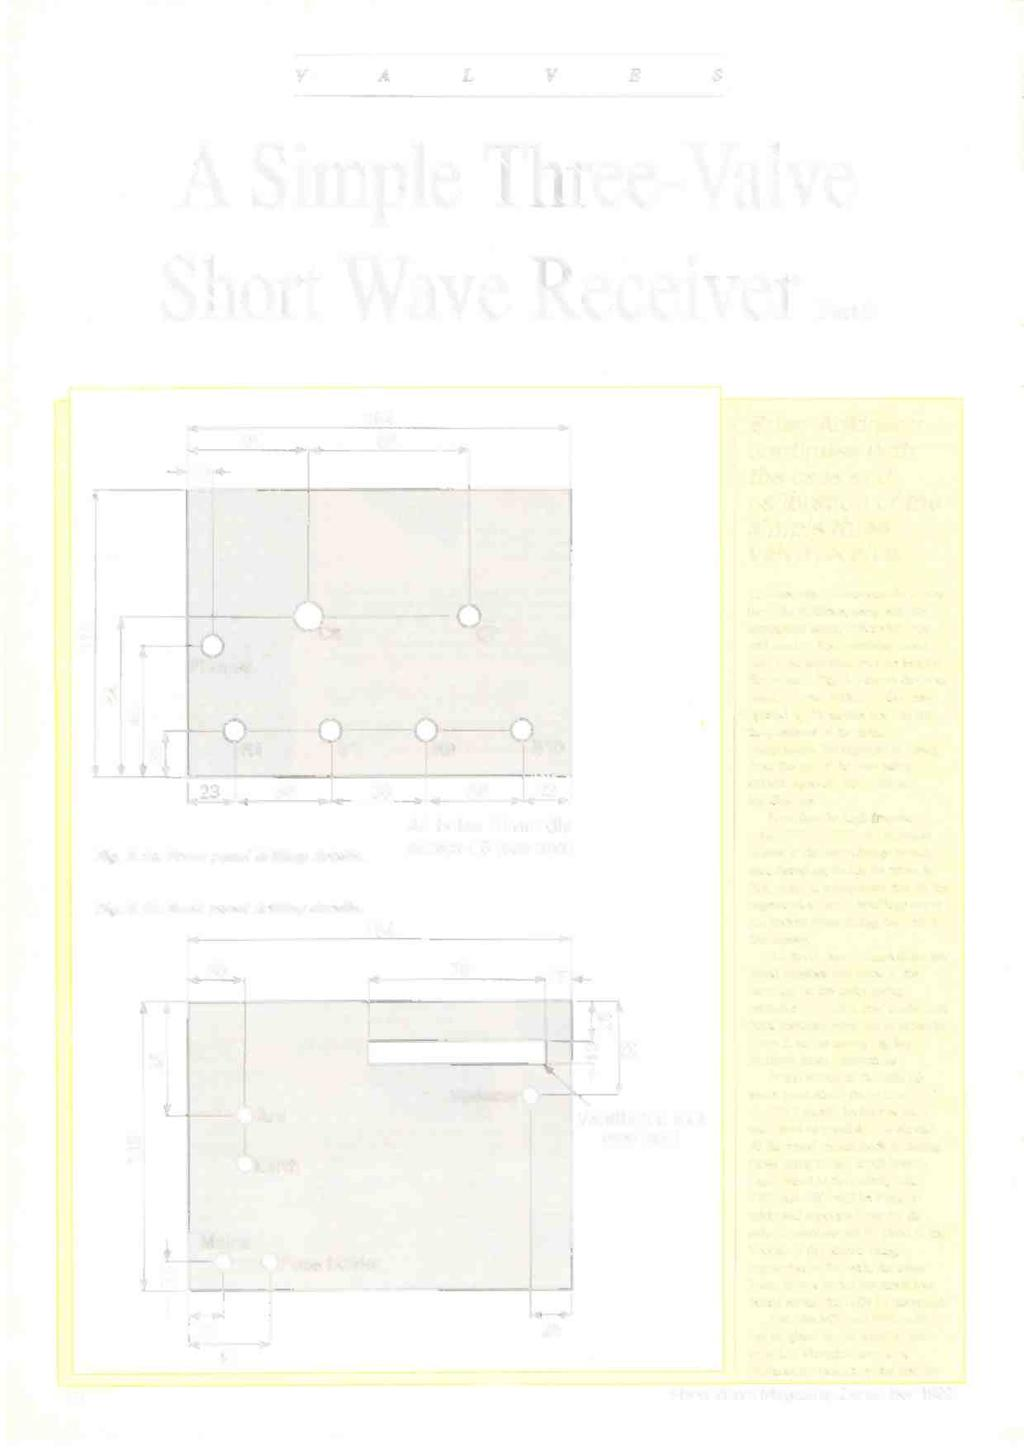 Inside This Issue Life After Marco Polo Pdf 1954 Case Dc 3 Tractor Starter Wiring Diagram V A L E Simple Three Valve Short Wave Receiver Pe 10 154 48 68 Brian Adkinson